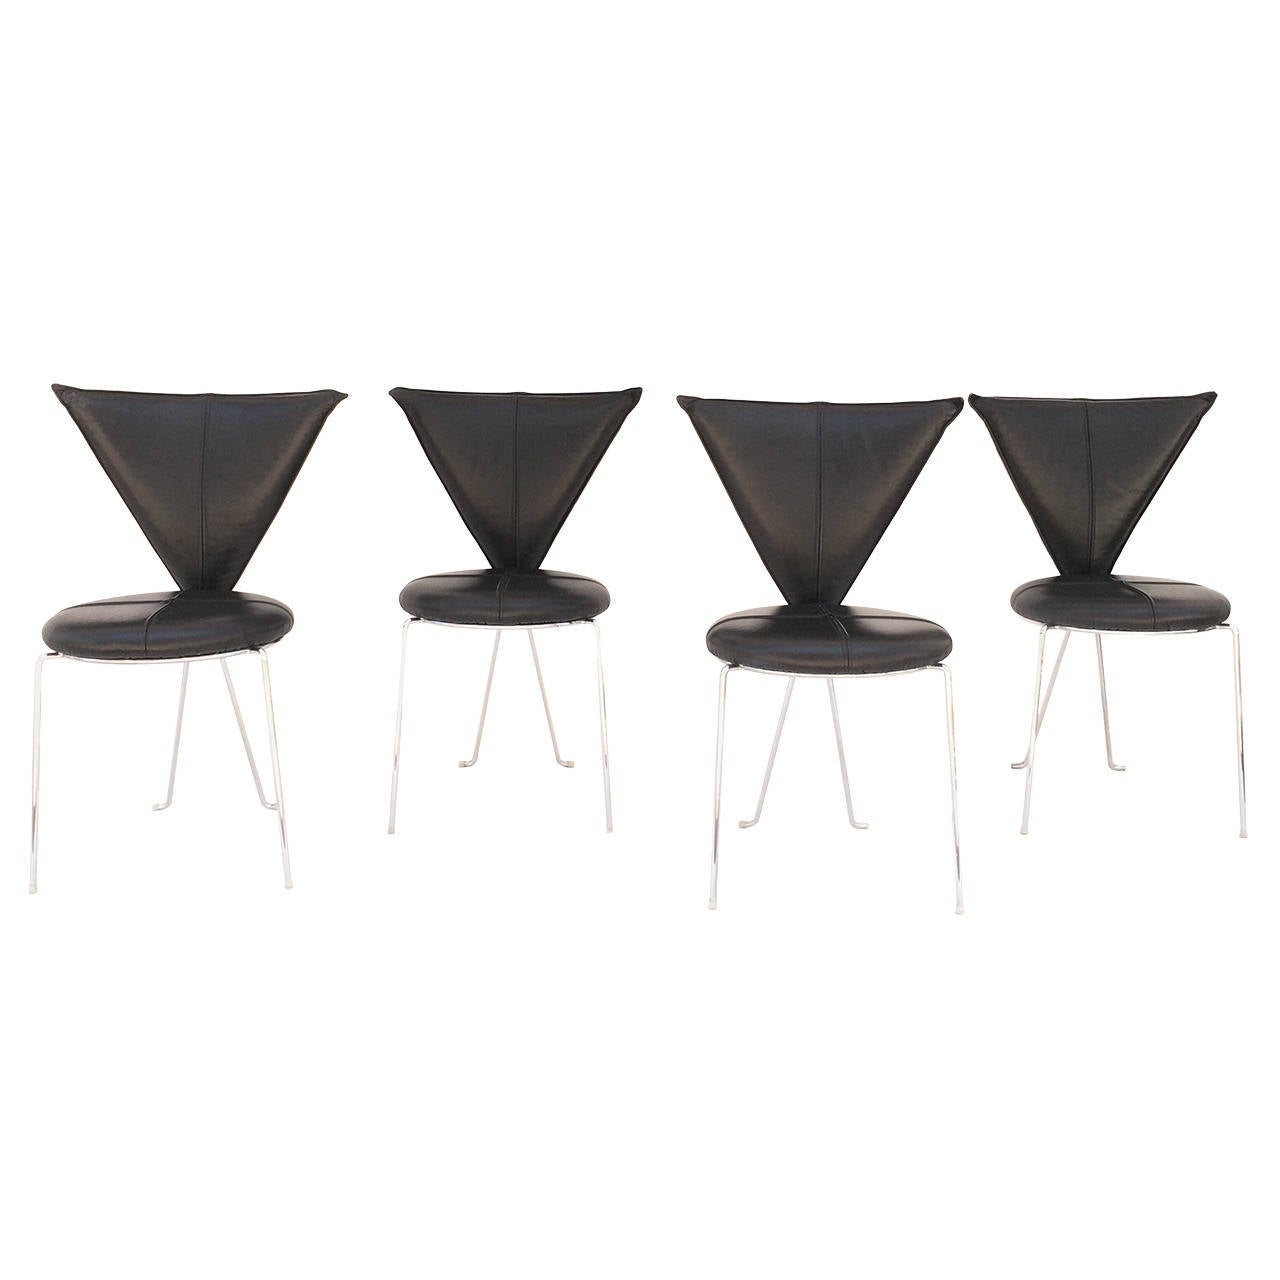 Rare Set of Four Black Leather and Chrome Chairs by Helmut Lubke & Co